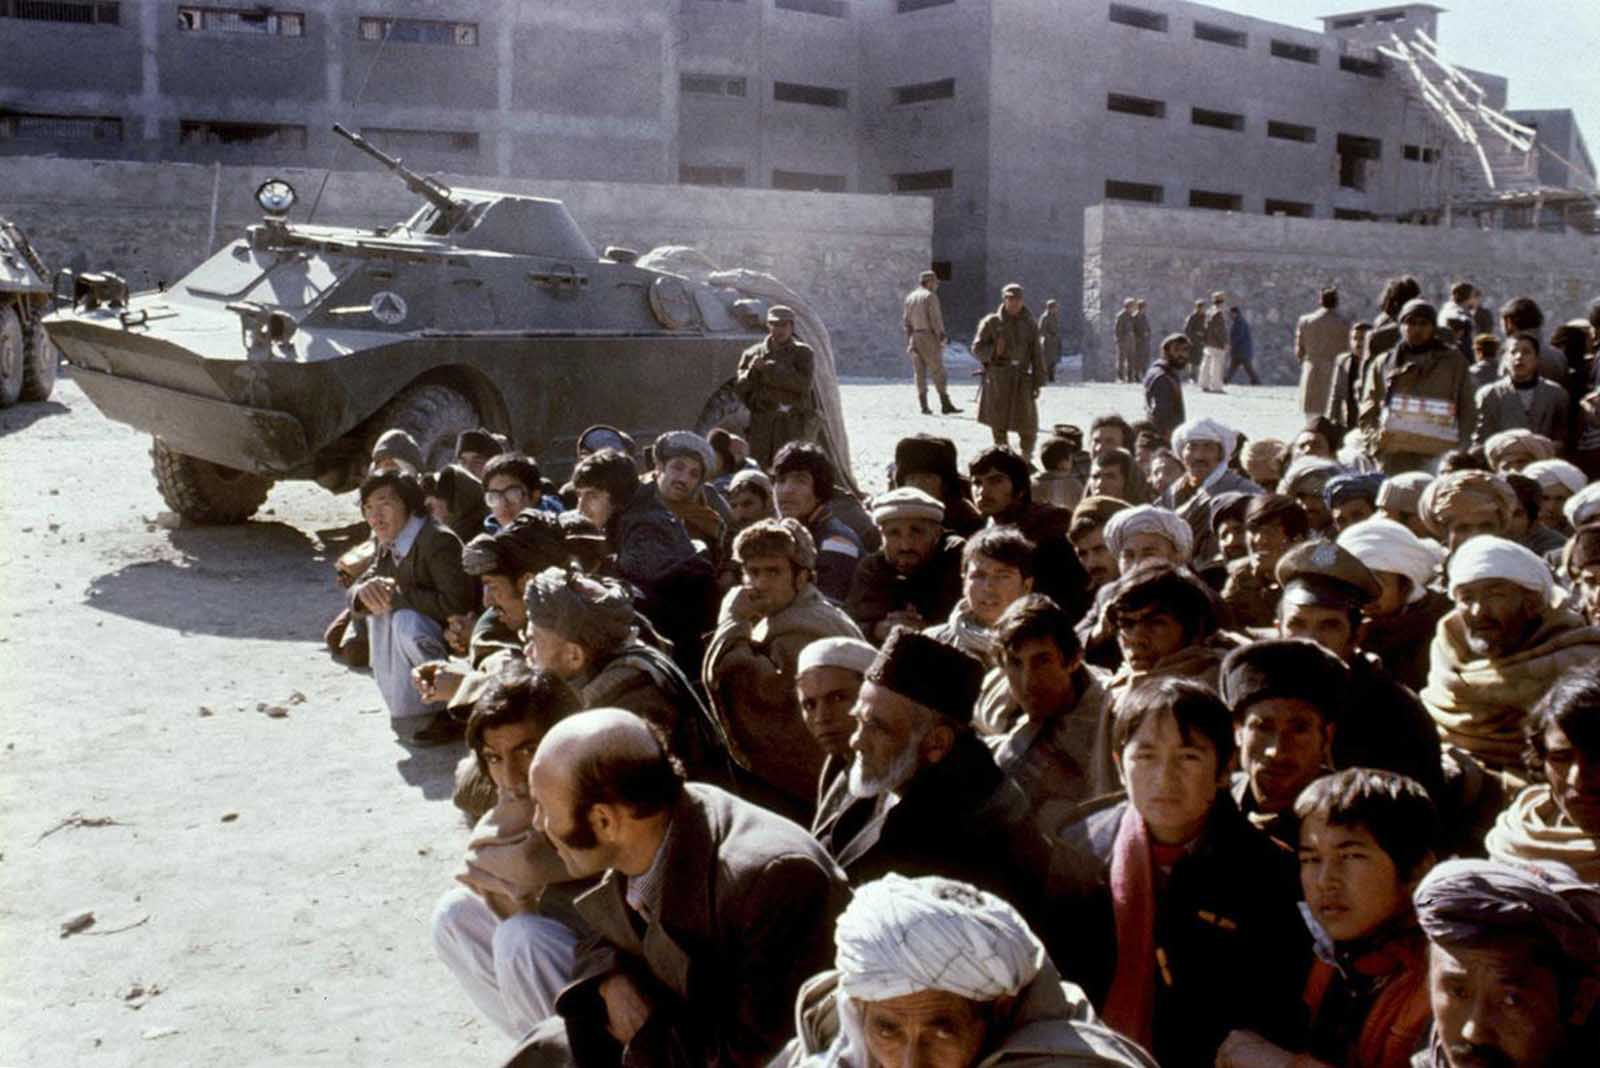 Afghans wait outside the Kabul central Pulicharkhi prison on January 14, 1980, days after the Moscow-installed regime of Babrak Karmal took over. Although the regime released 126 prisoners from the notorious jail, around 1,000 residents stormed the compound to set 12 inmates free.